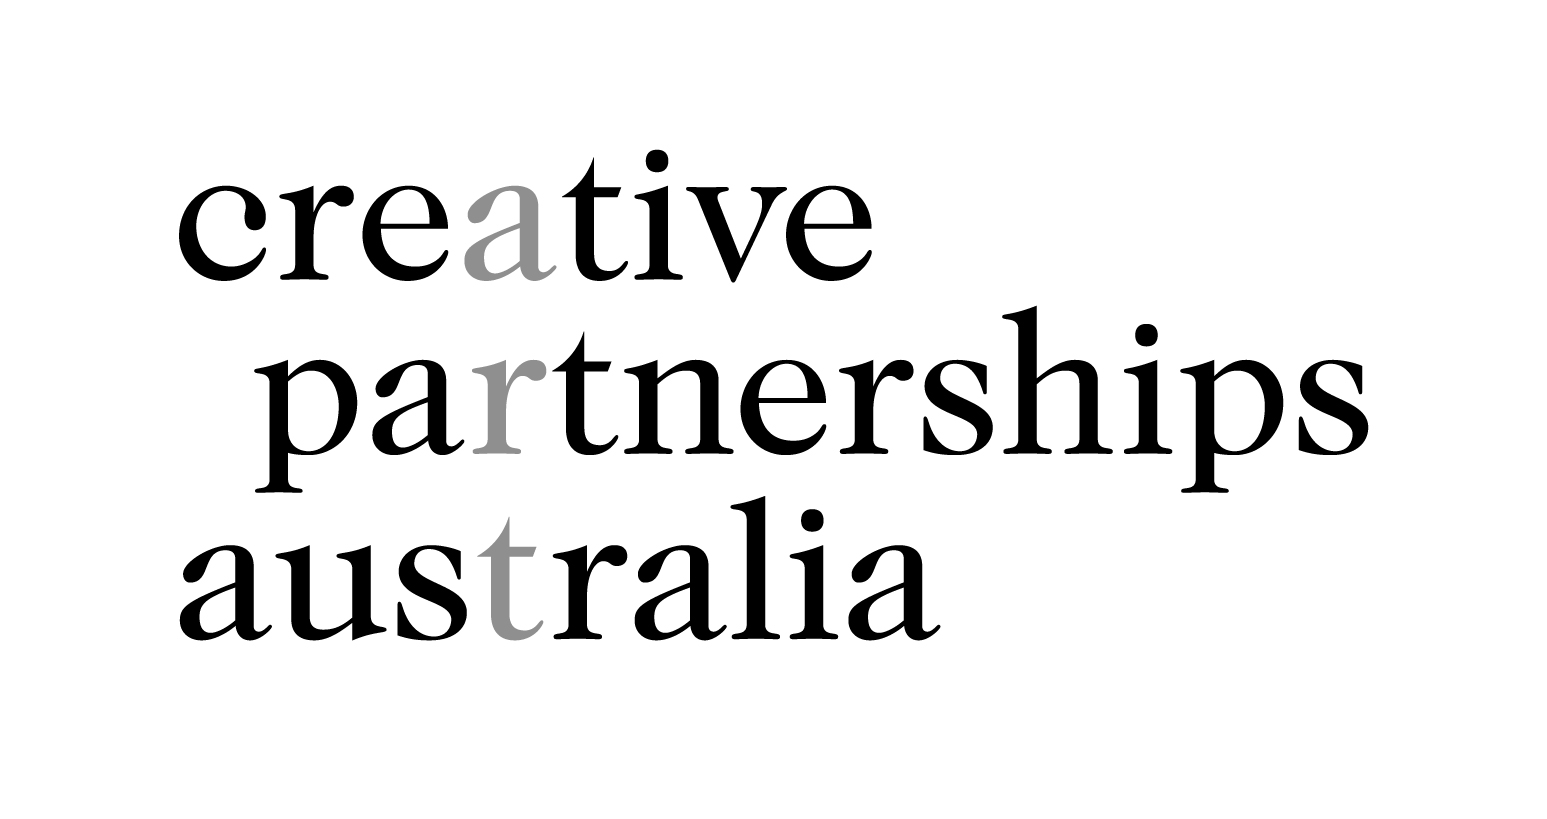 creative_partnerships_australia_greyscale